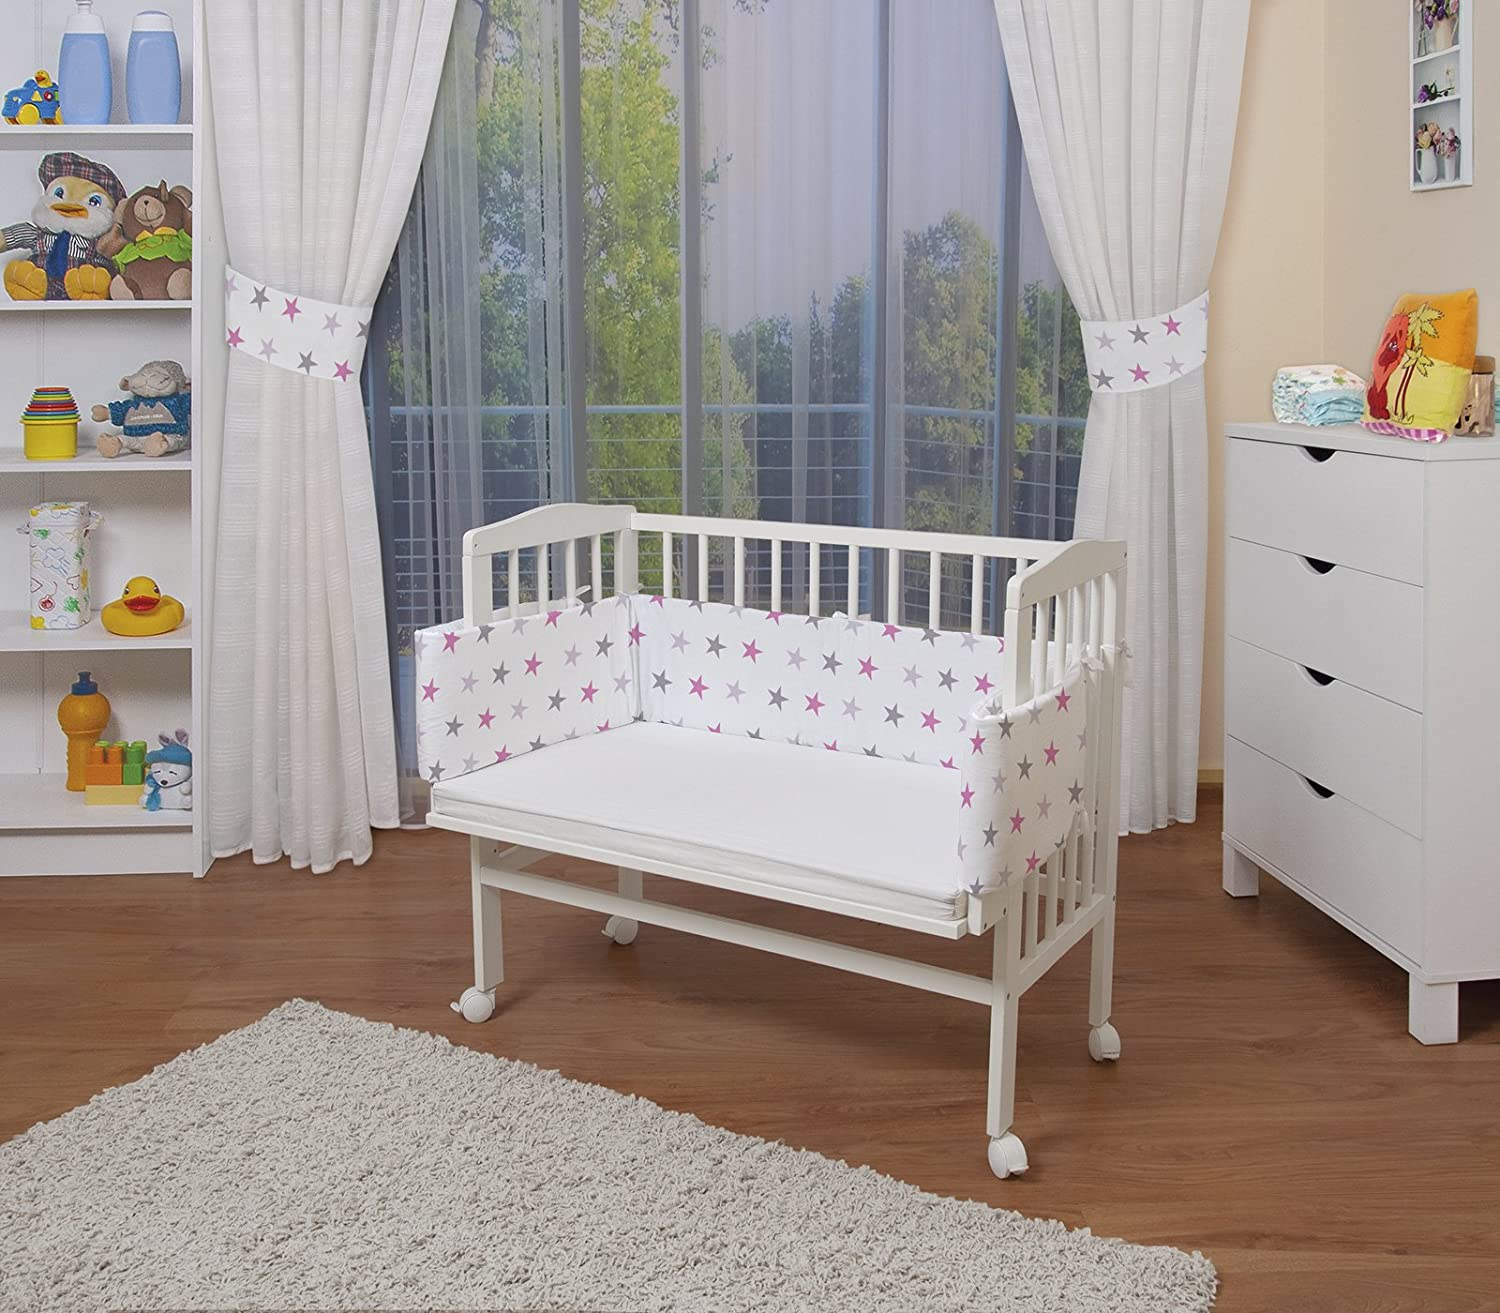 WALDIN Baby Bedside Cot Co-Sleeping height adjustable with bumper,16 models available, untreated,textile colour blue